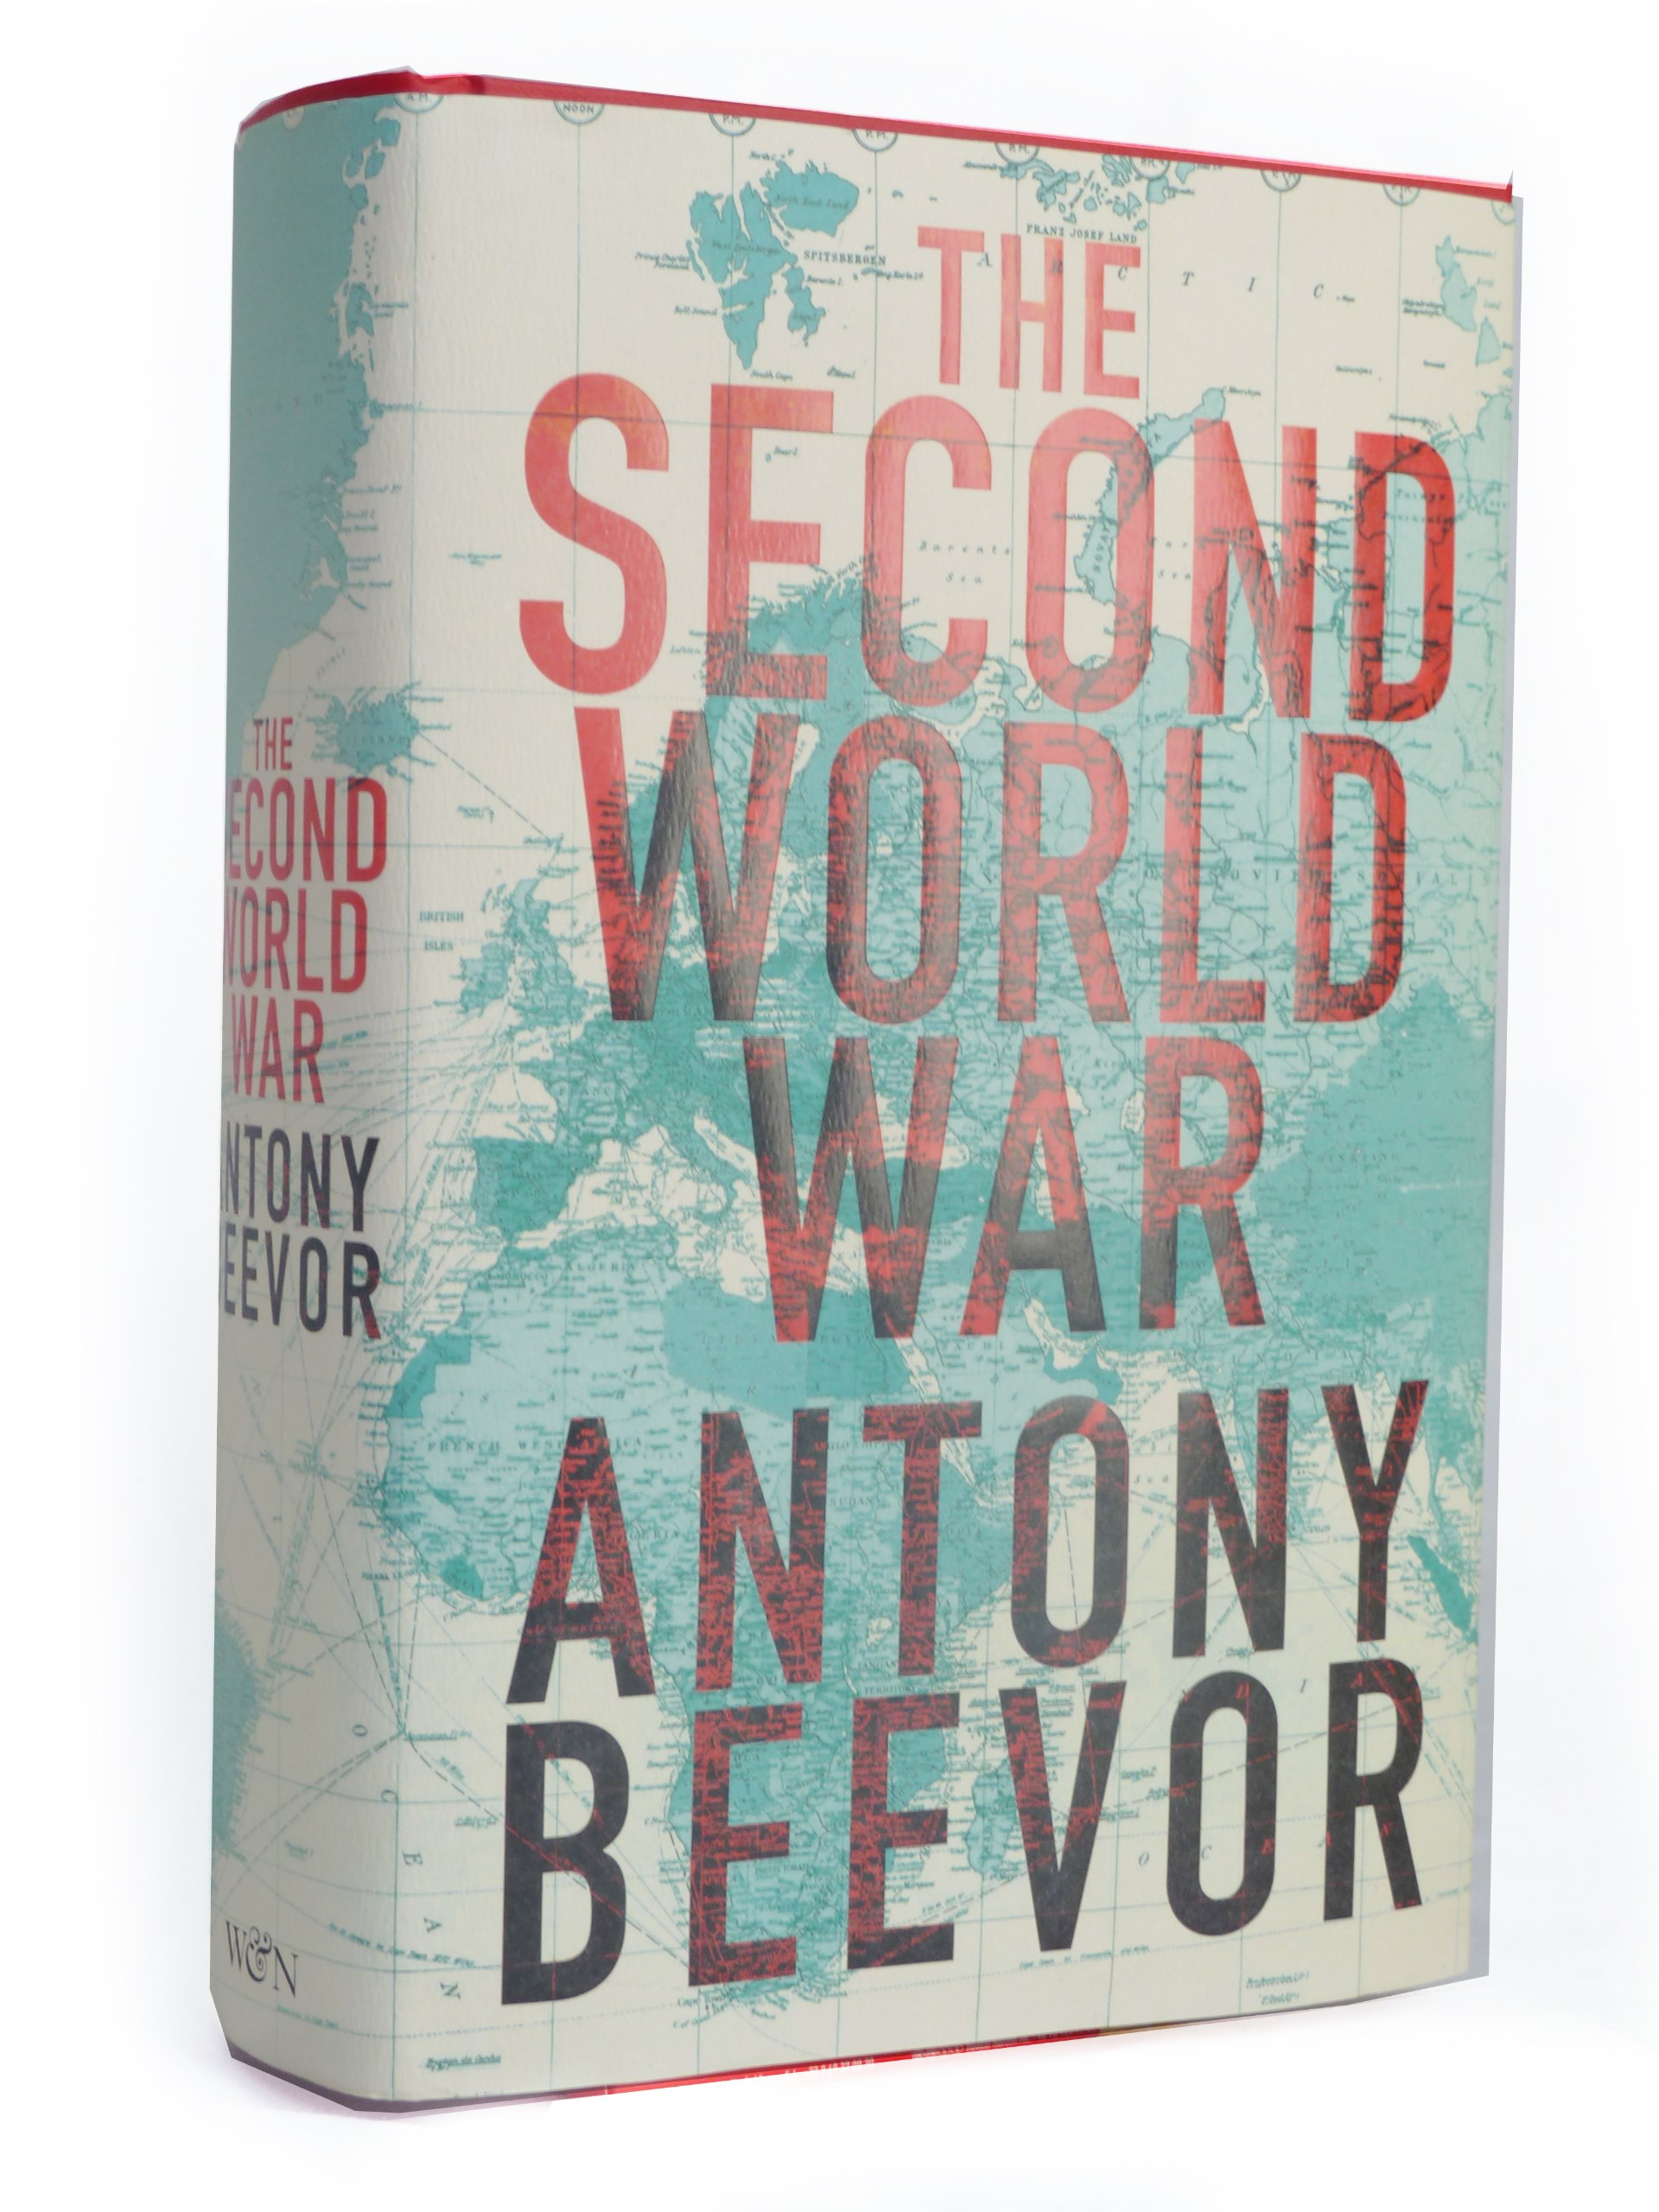 The Second World War Antony Beevor Ebook